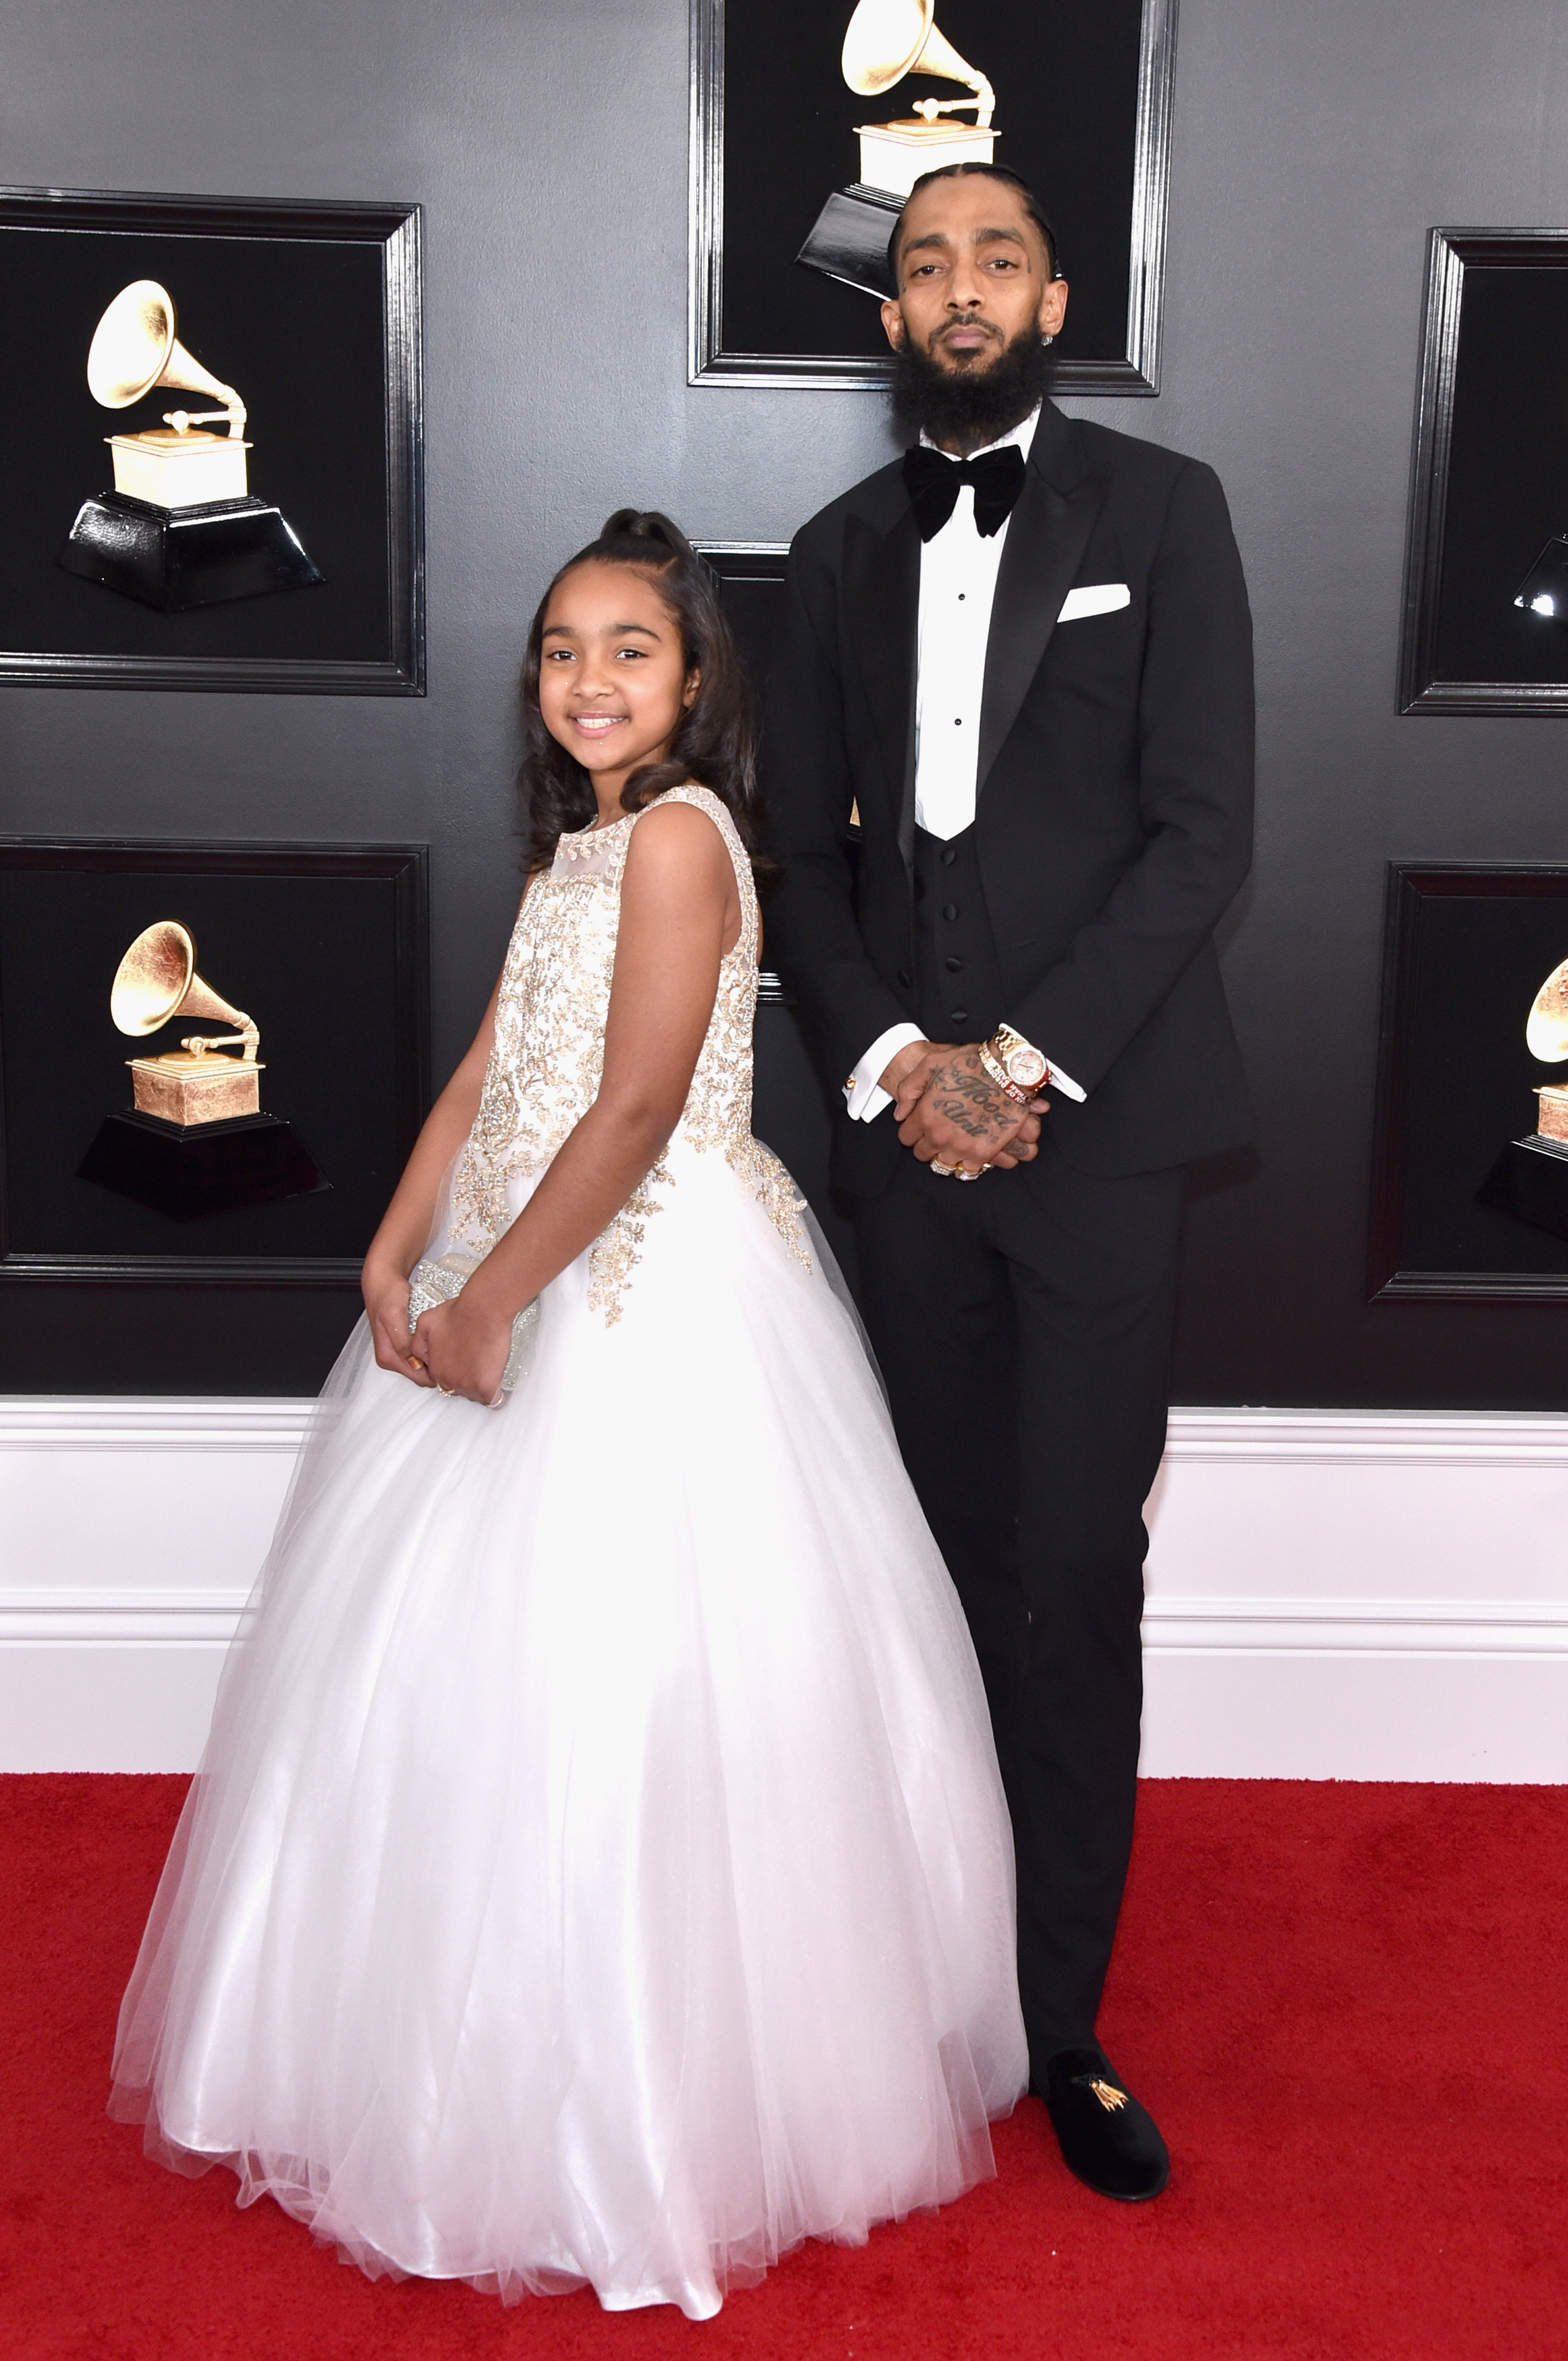 Nipsey Hussle & daughter Emani at the GRAMMY Awards on Feb. 10, 2019 in California | Photo: Getty Images